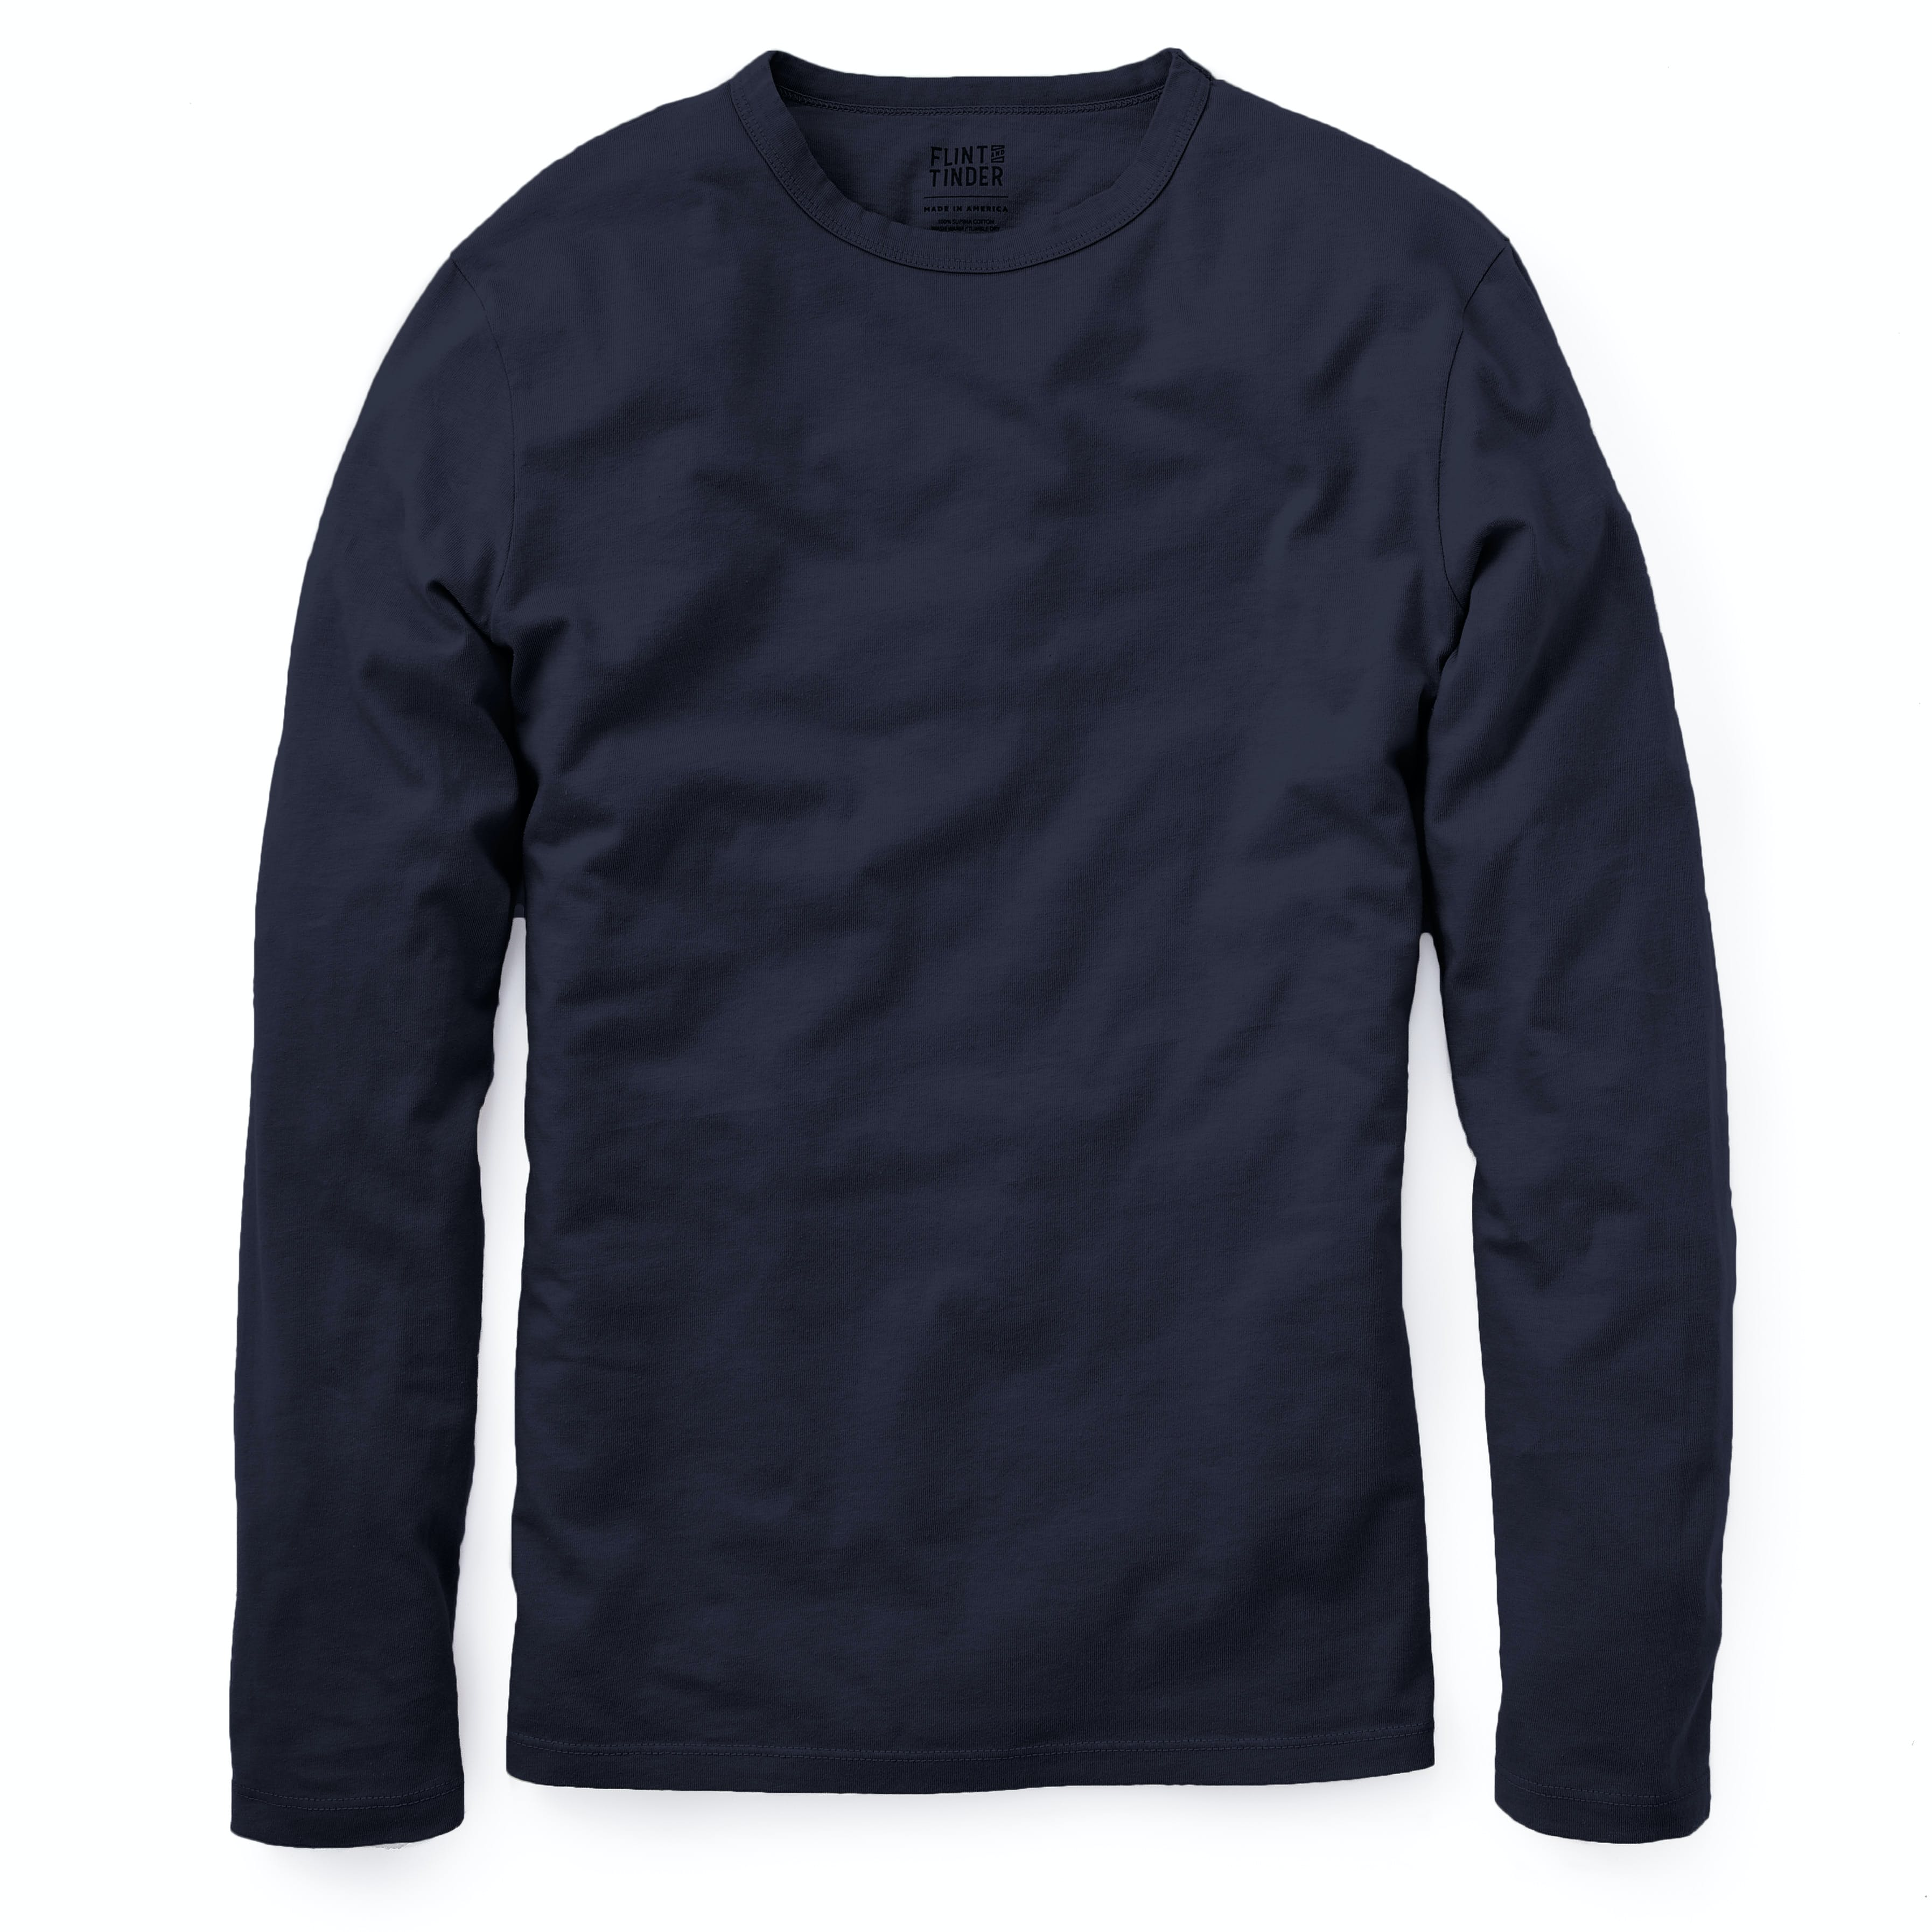 Mammlgba1k flint and tinder supima air knit ls tee 0 original